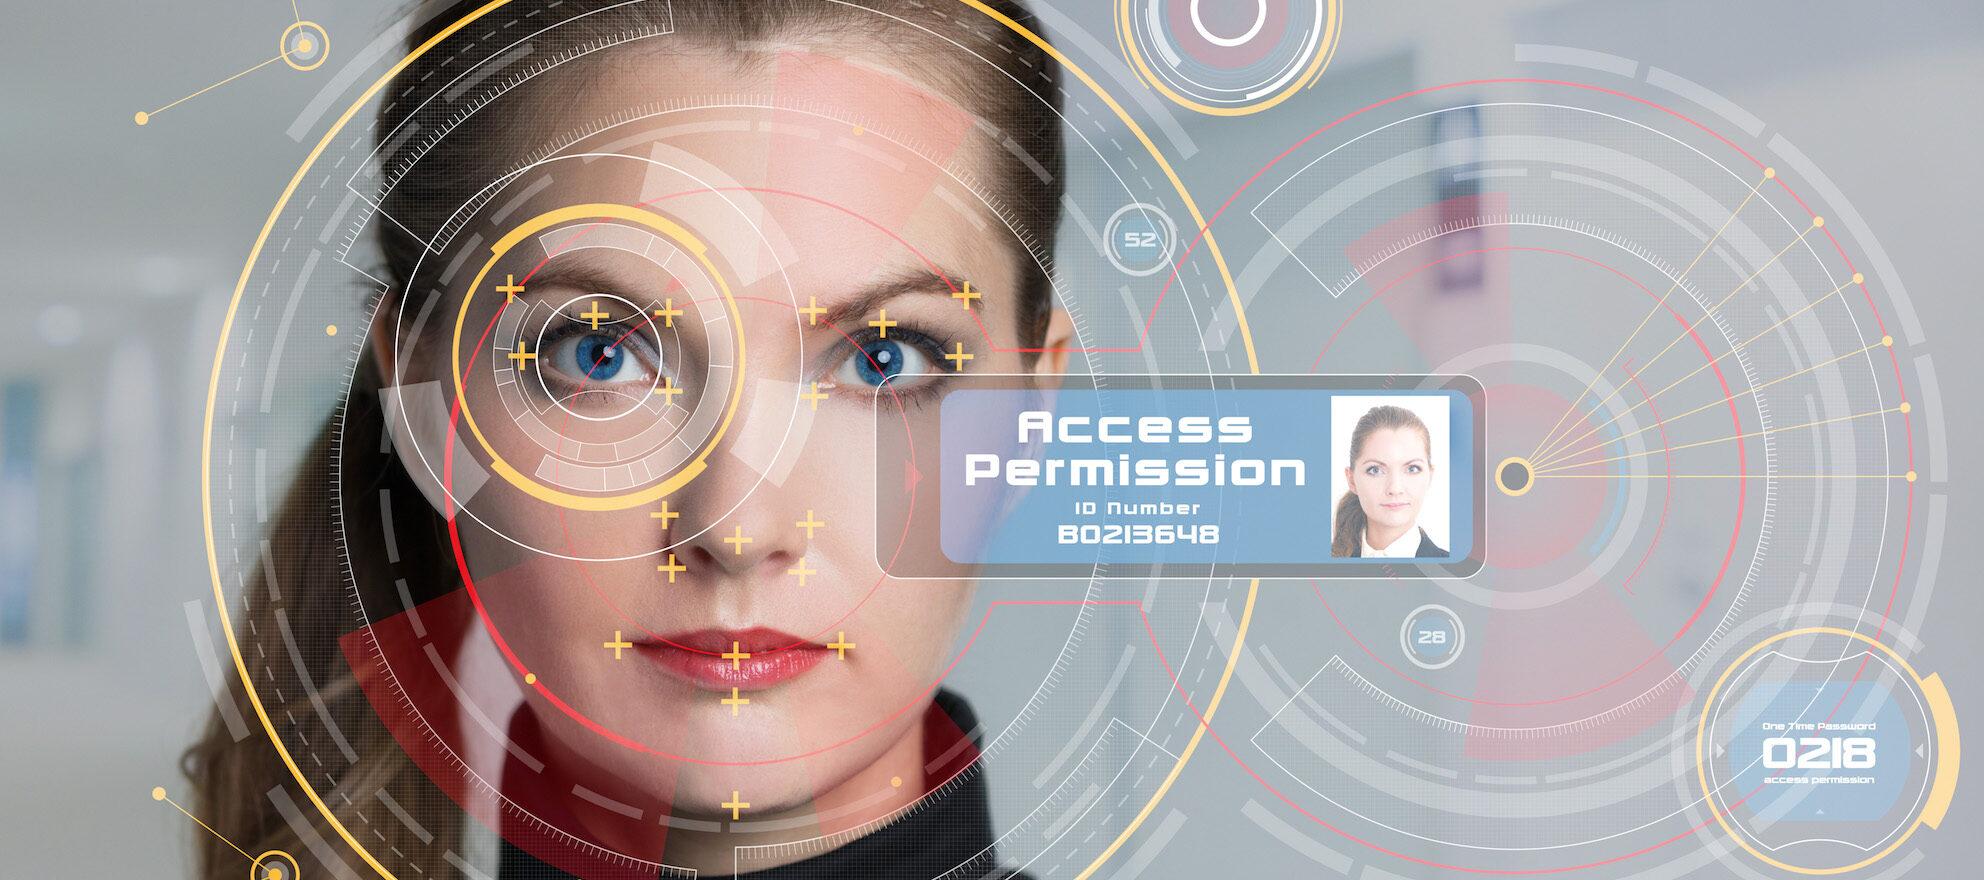 High-end homeowners love biometric tech — but should they?